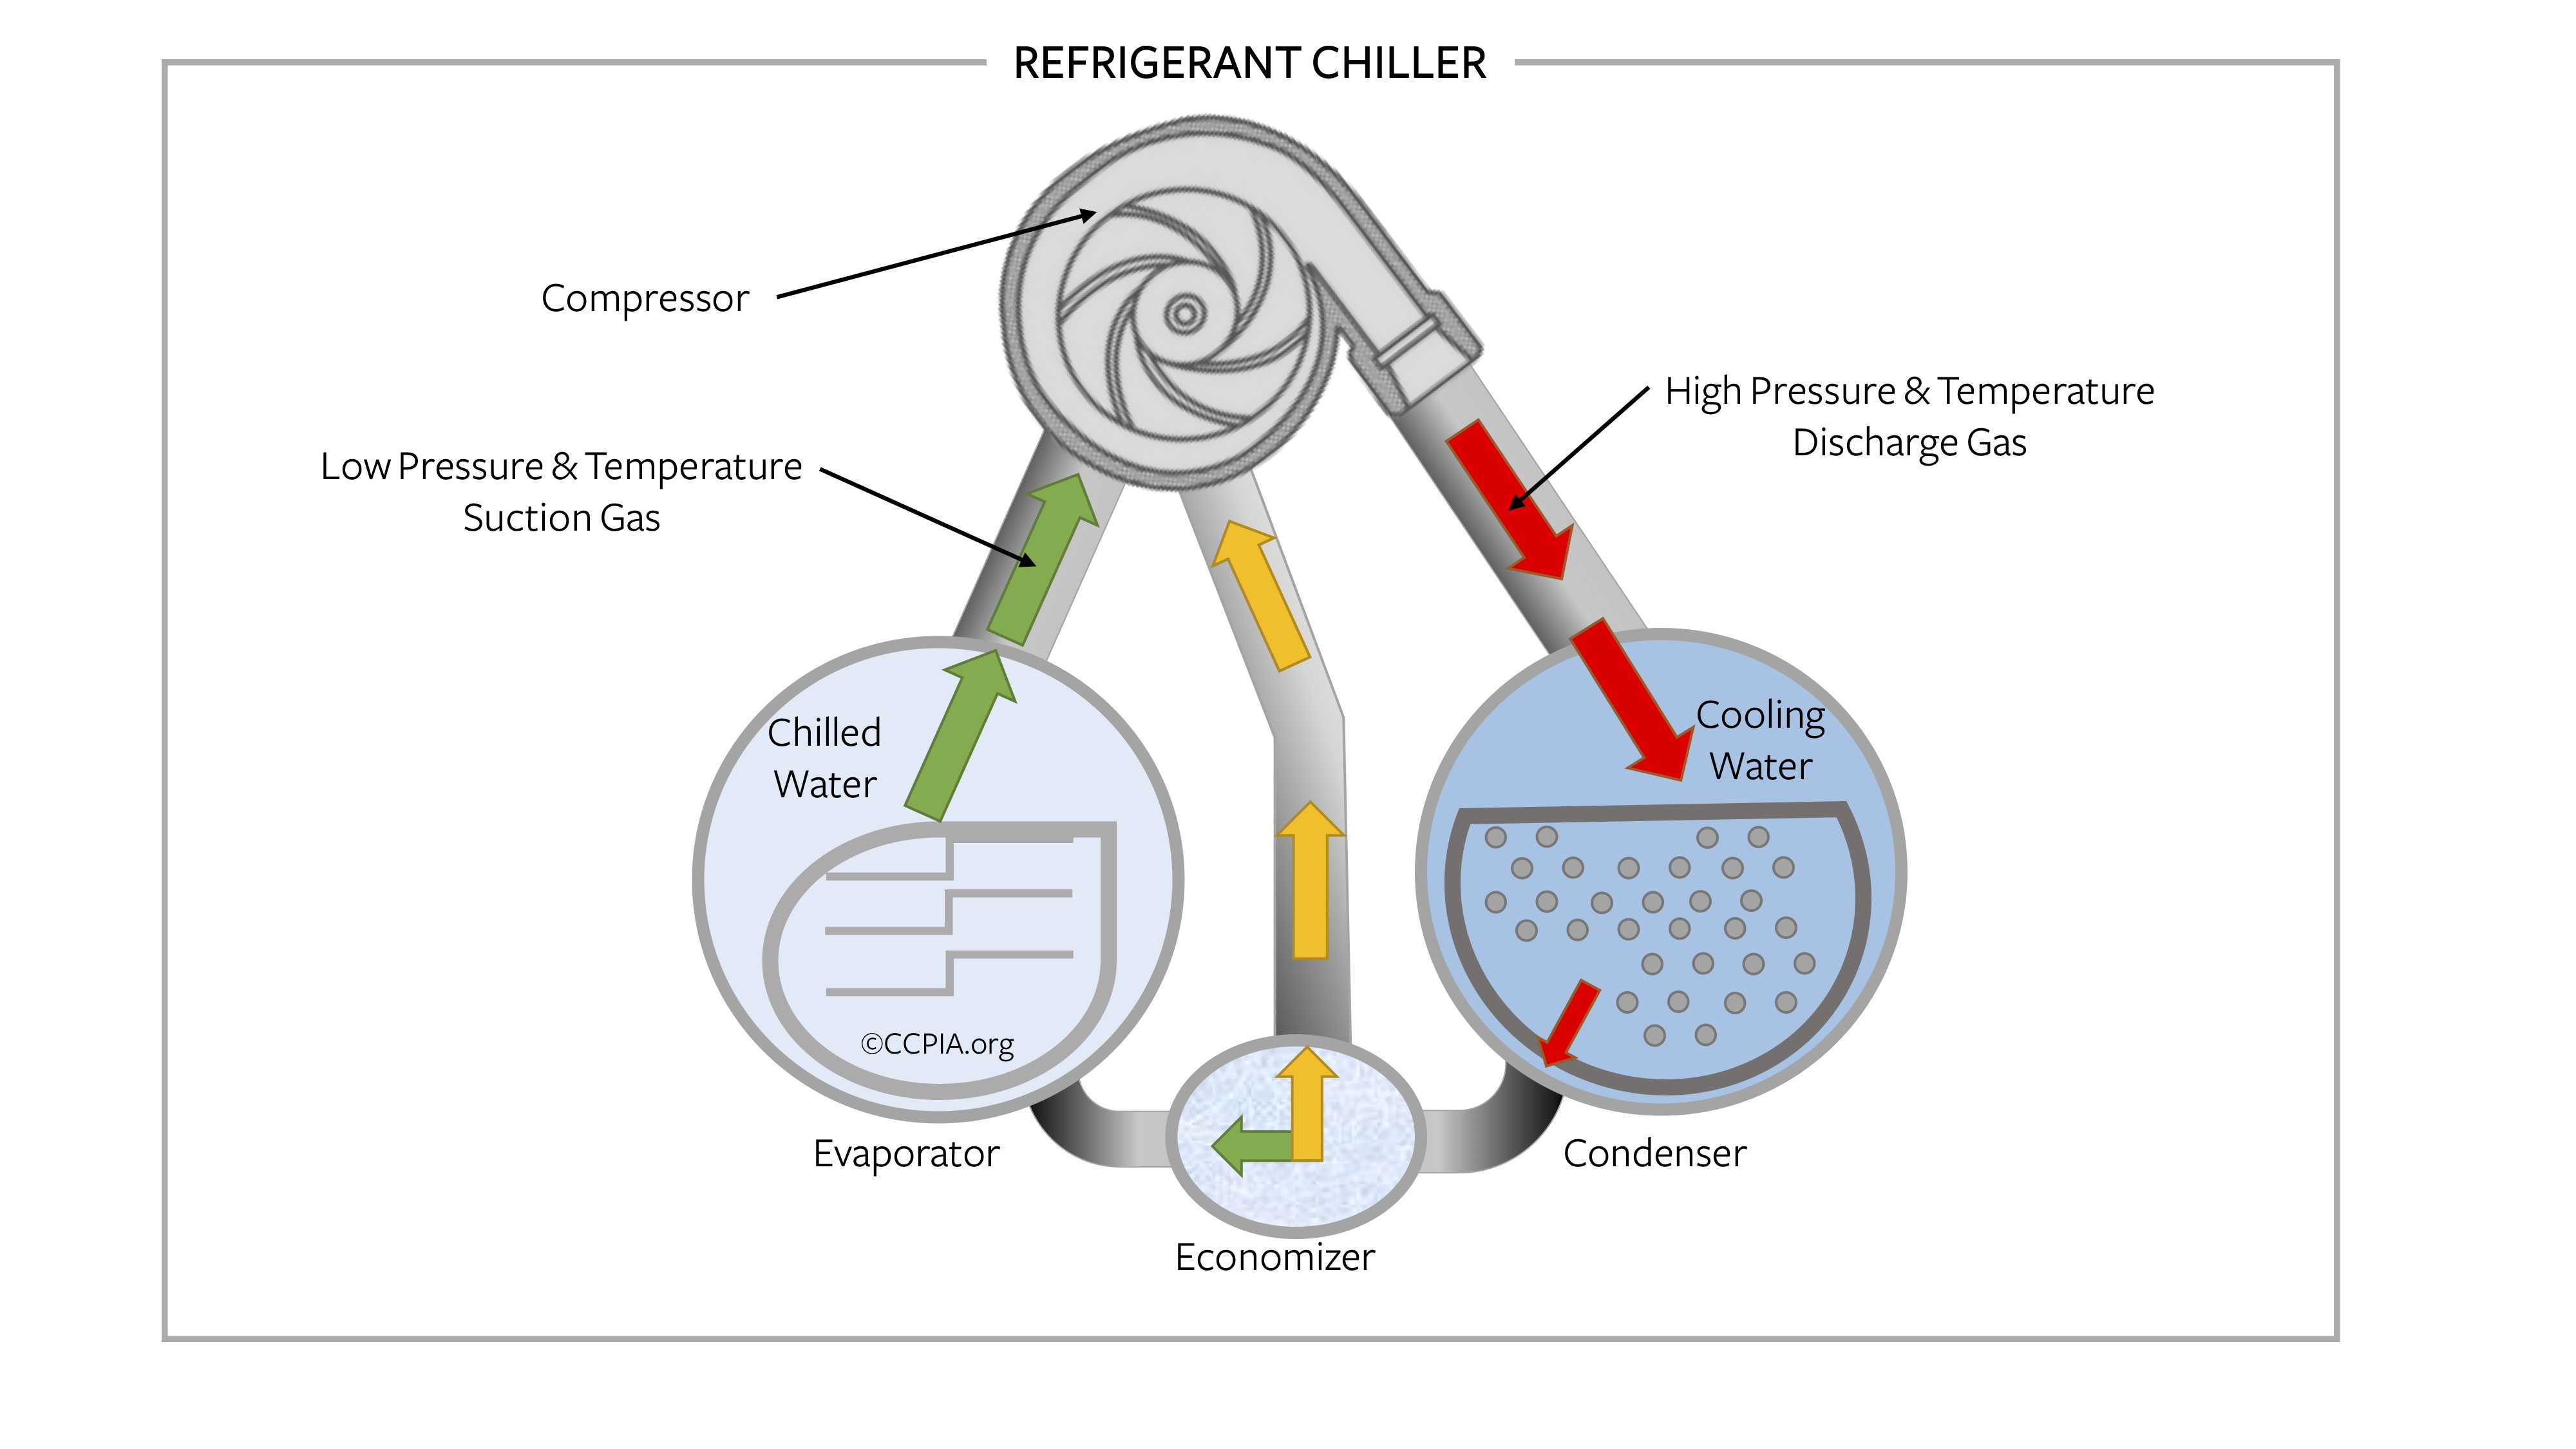 Commercial building refrigerant chiller.